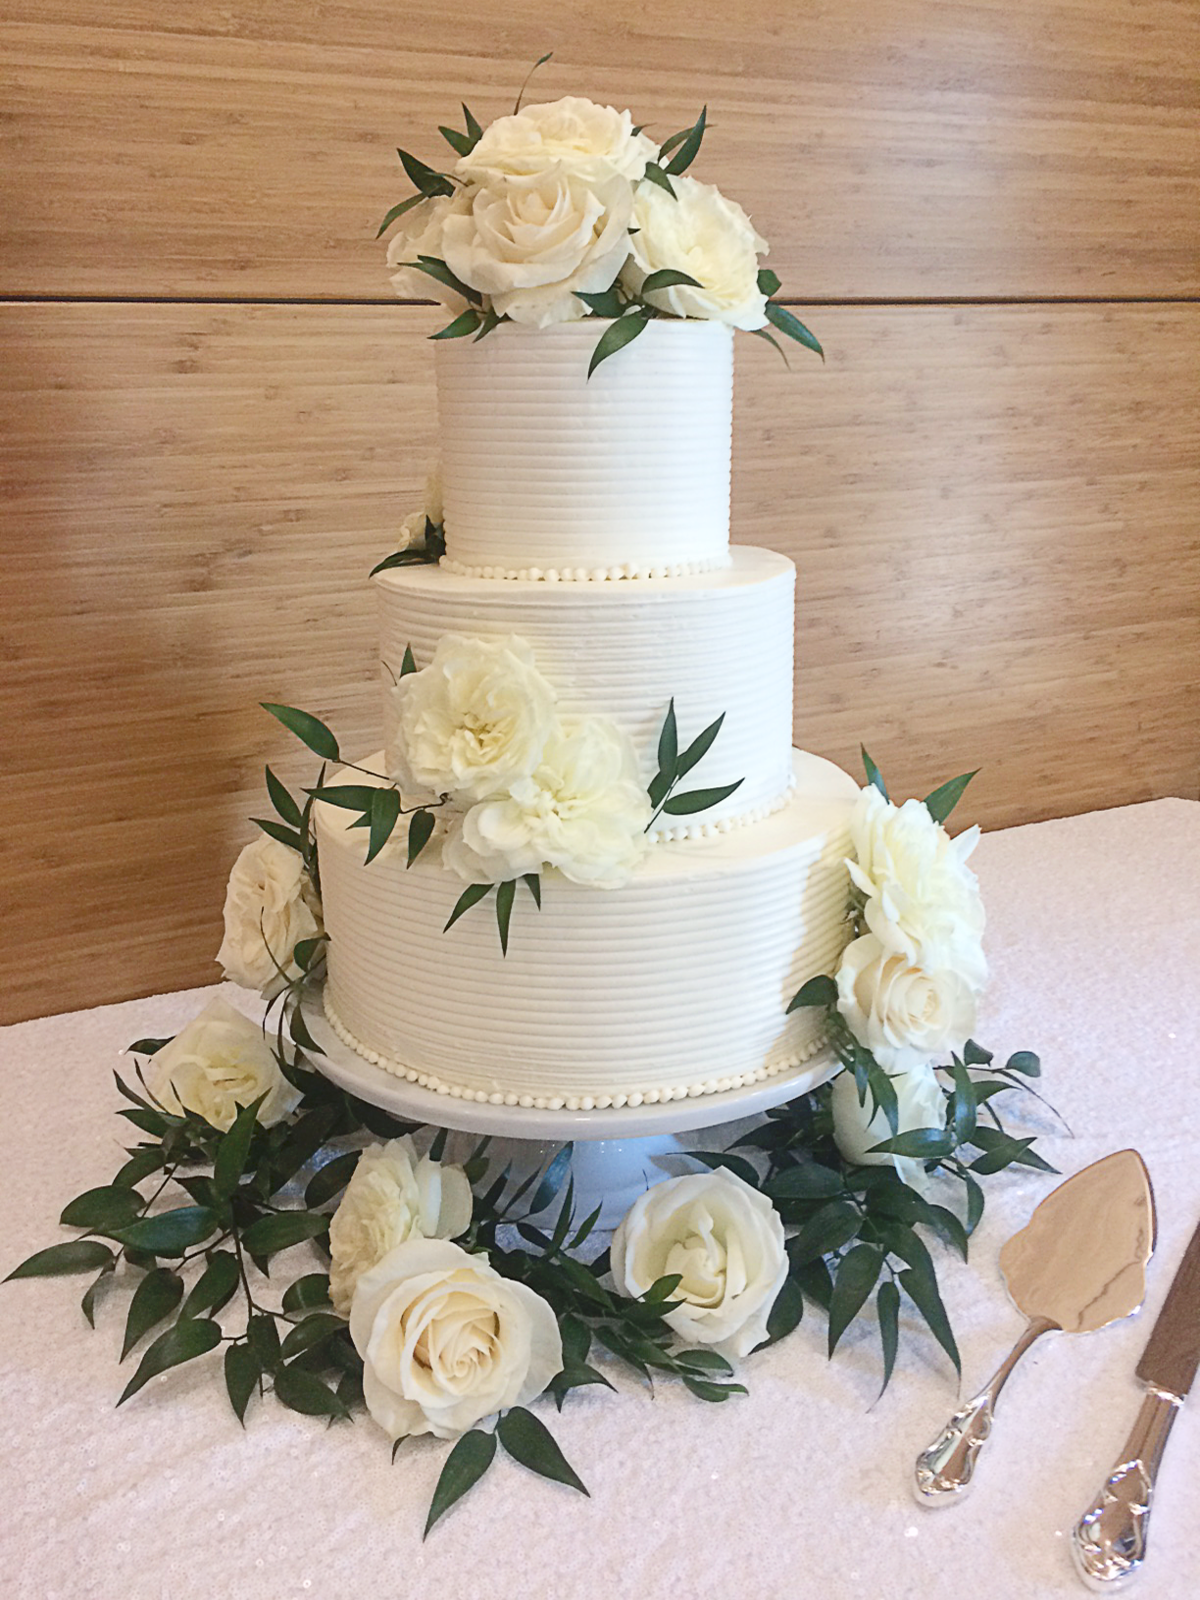 Whippt Desserts wedding cake June 2017 - Flowers courtesy of Dahlia